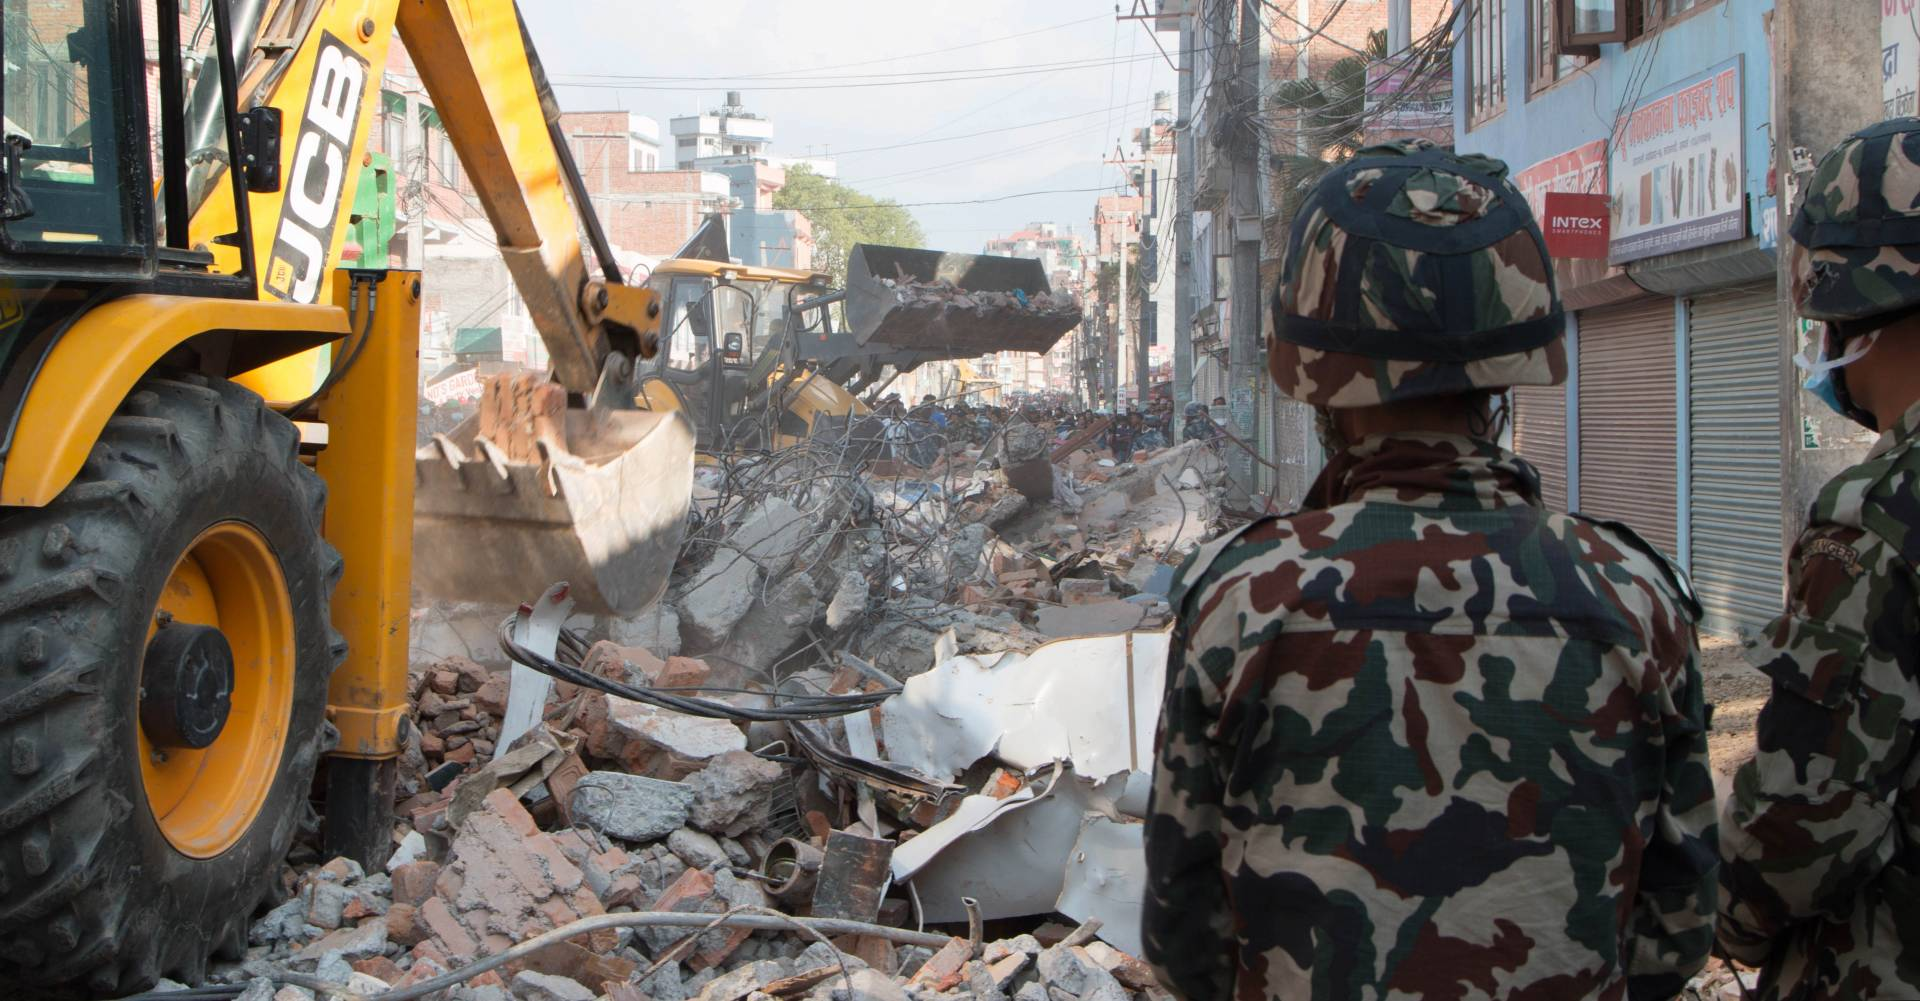 JCB donates machinery to help with effors to clean up after the second Nepal earthquake.